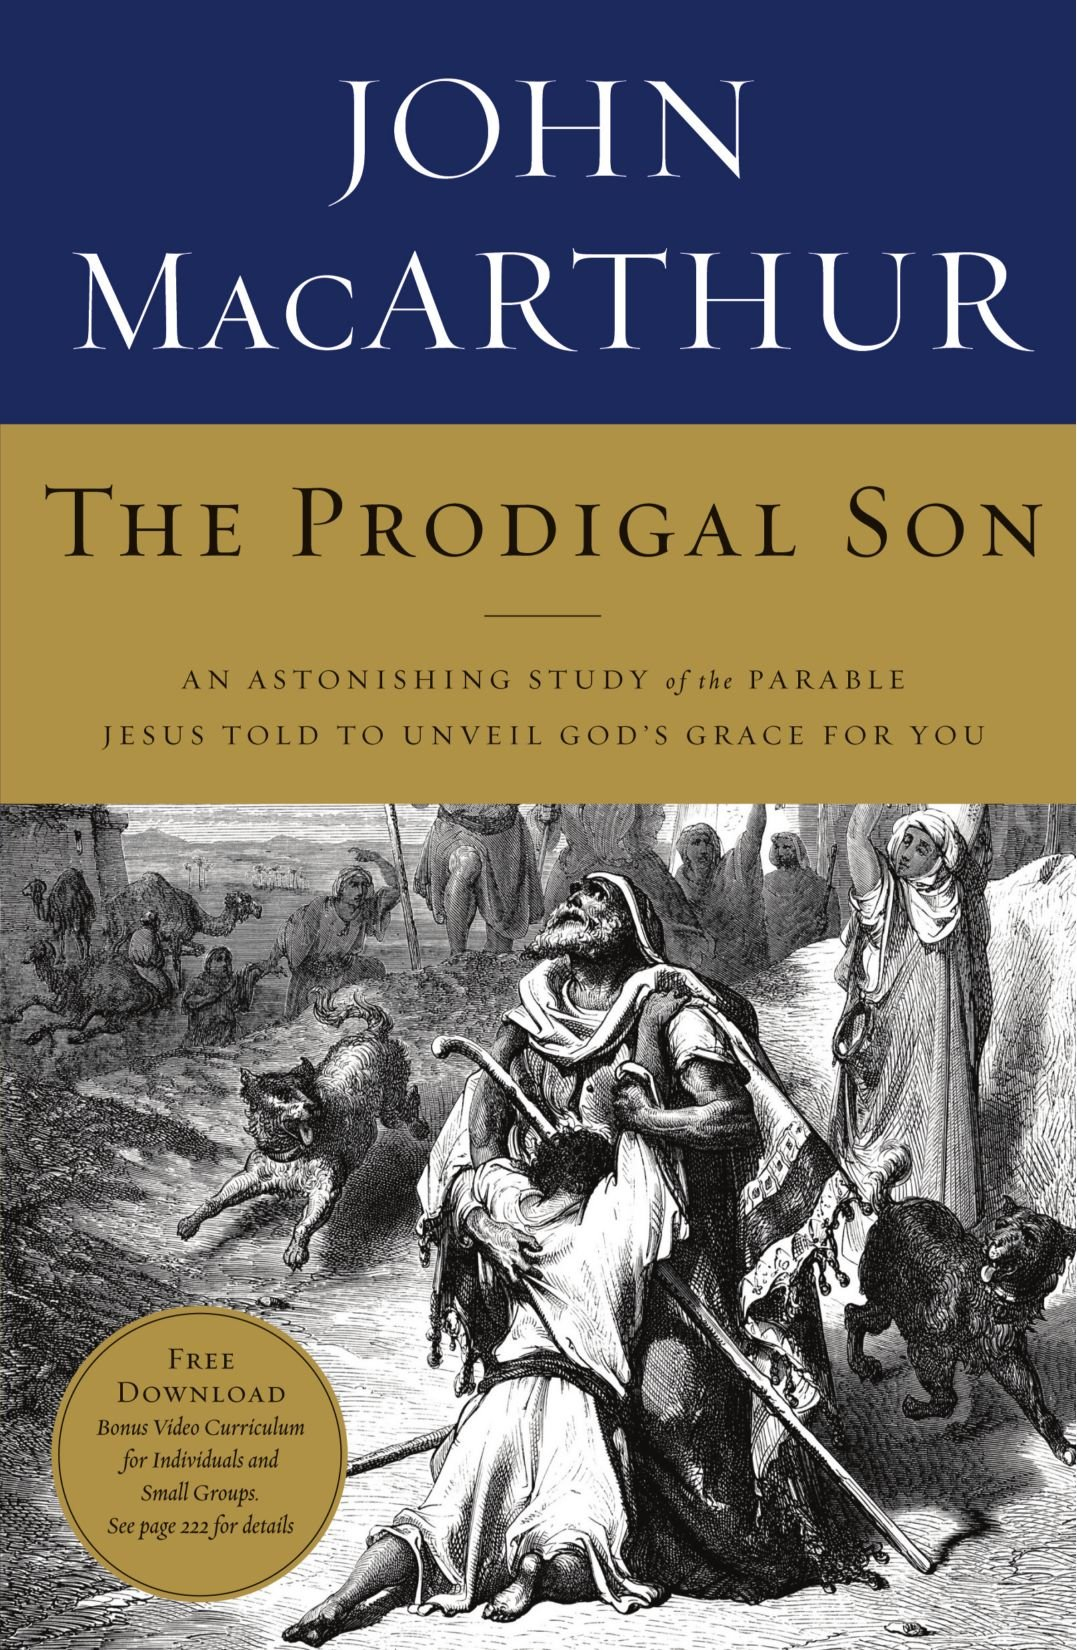 the prodigal son an astonishing study of the parable jesus told